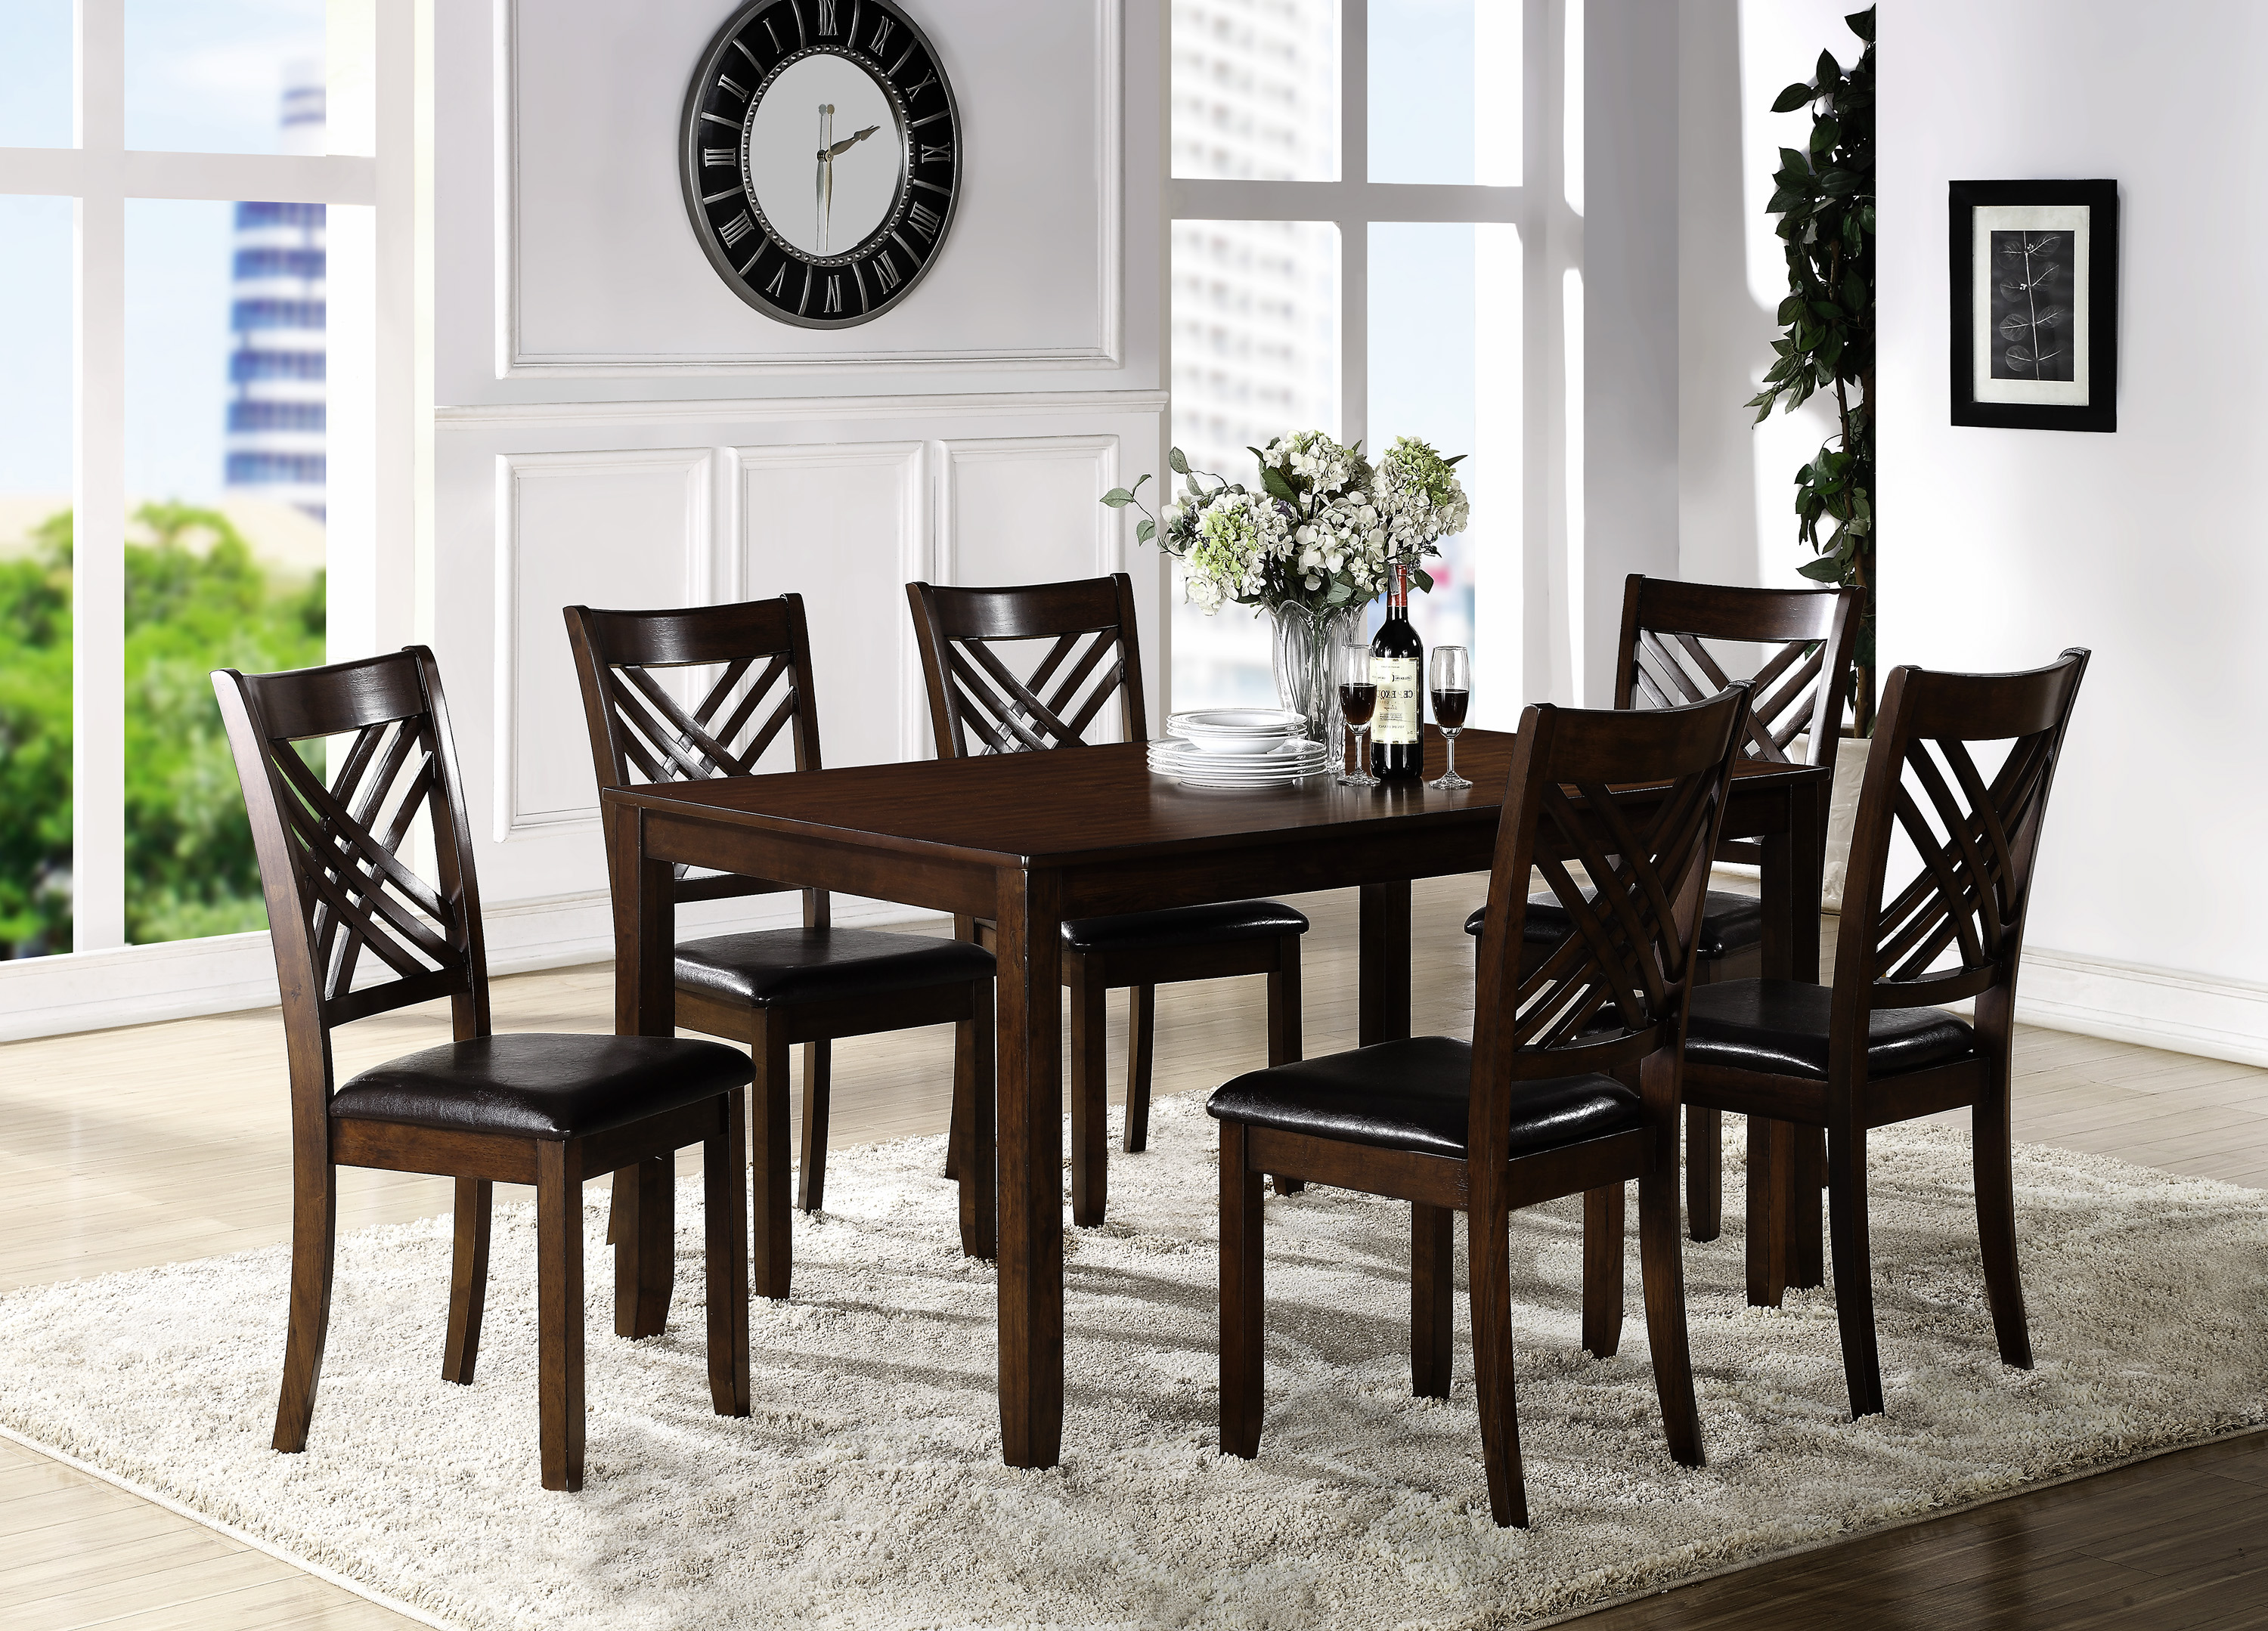 Eloise Dining Room Table with Six Side Chairs by Crown Mark at Northeast Factory Direct